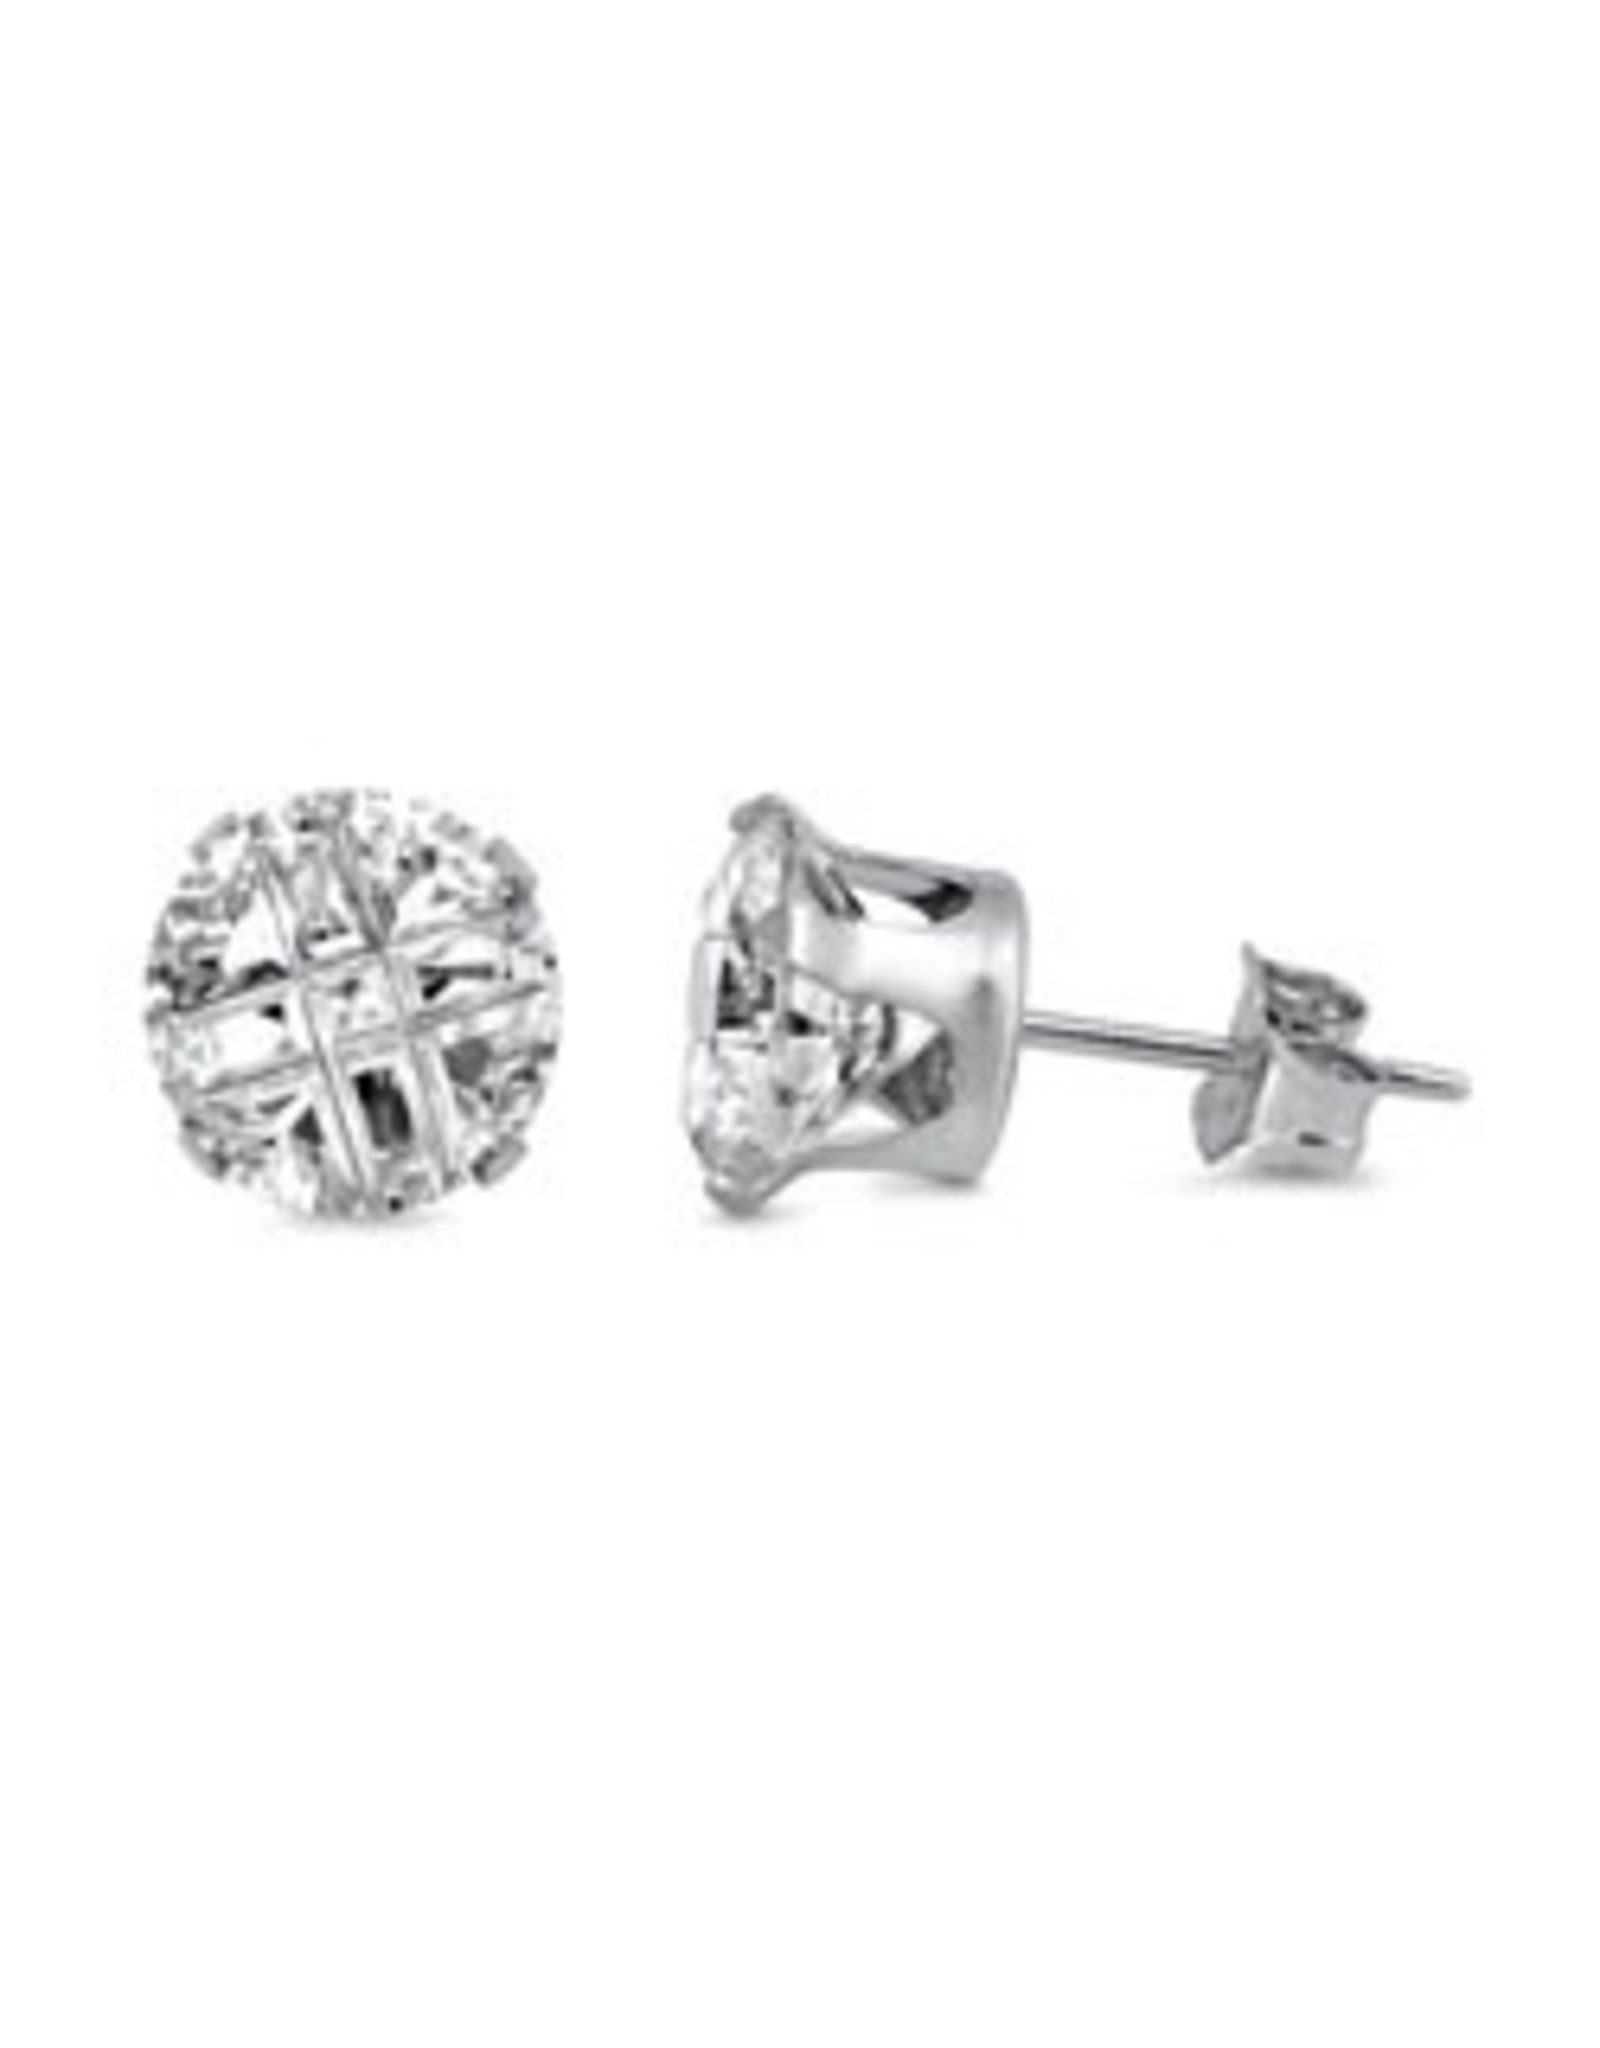 8 mm Invisible CZ Studs